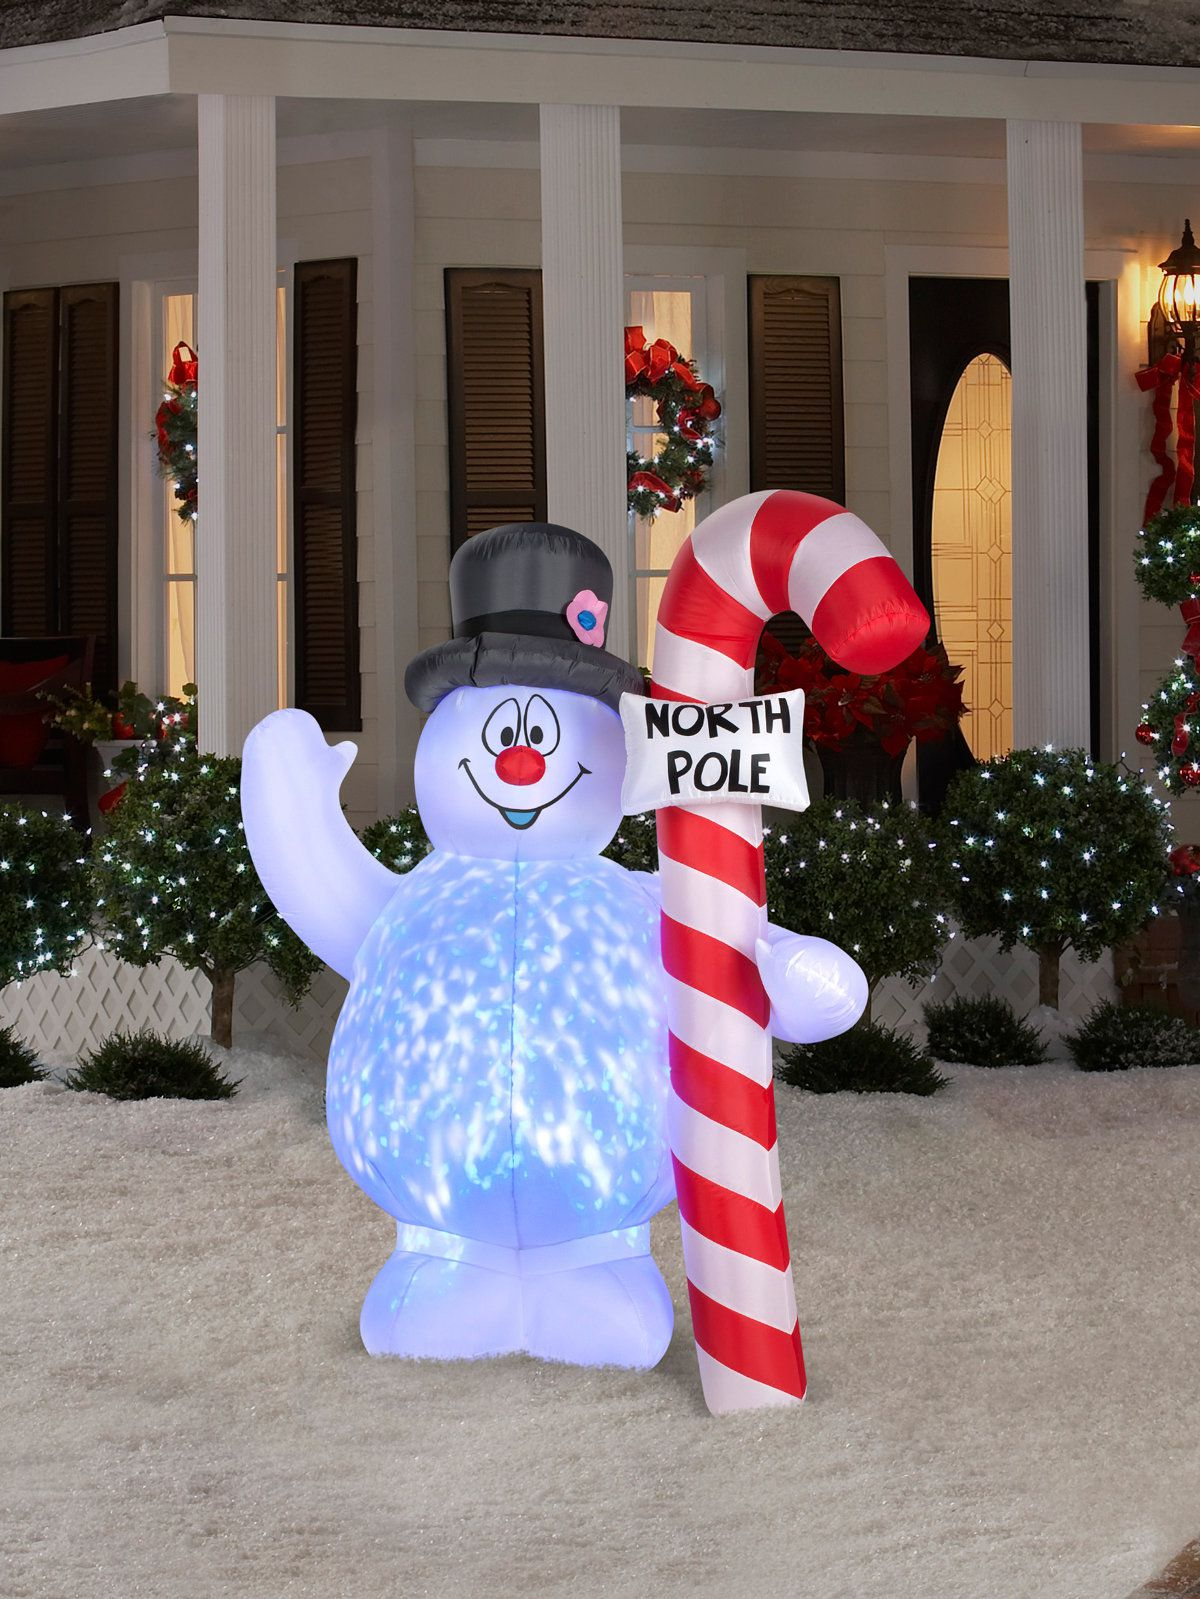 frosty hugging north pole sign projection light airblown lawn decor - North Pole Christmas Decorations